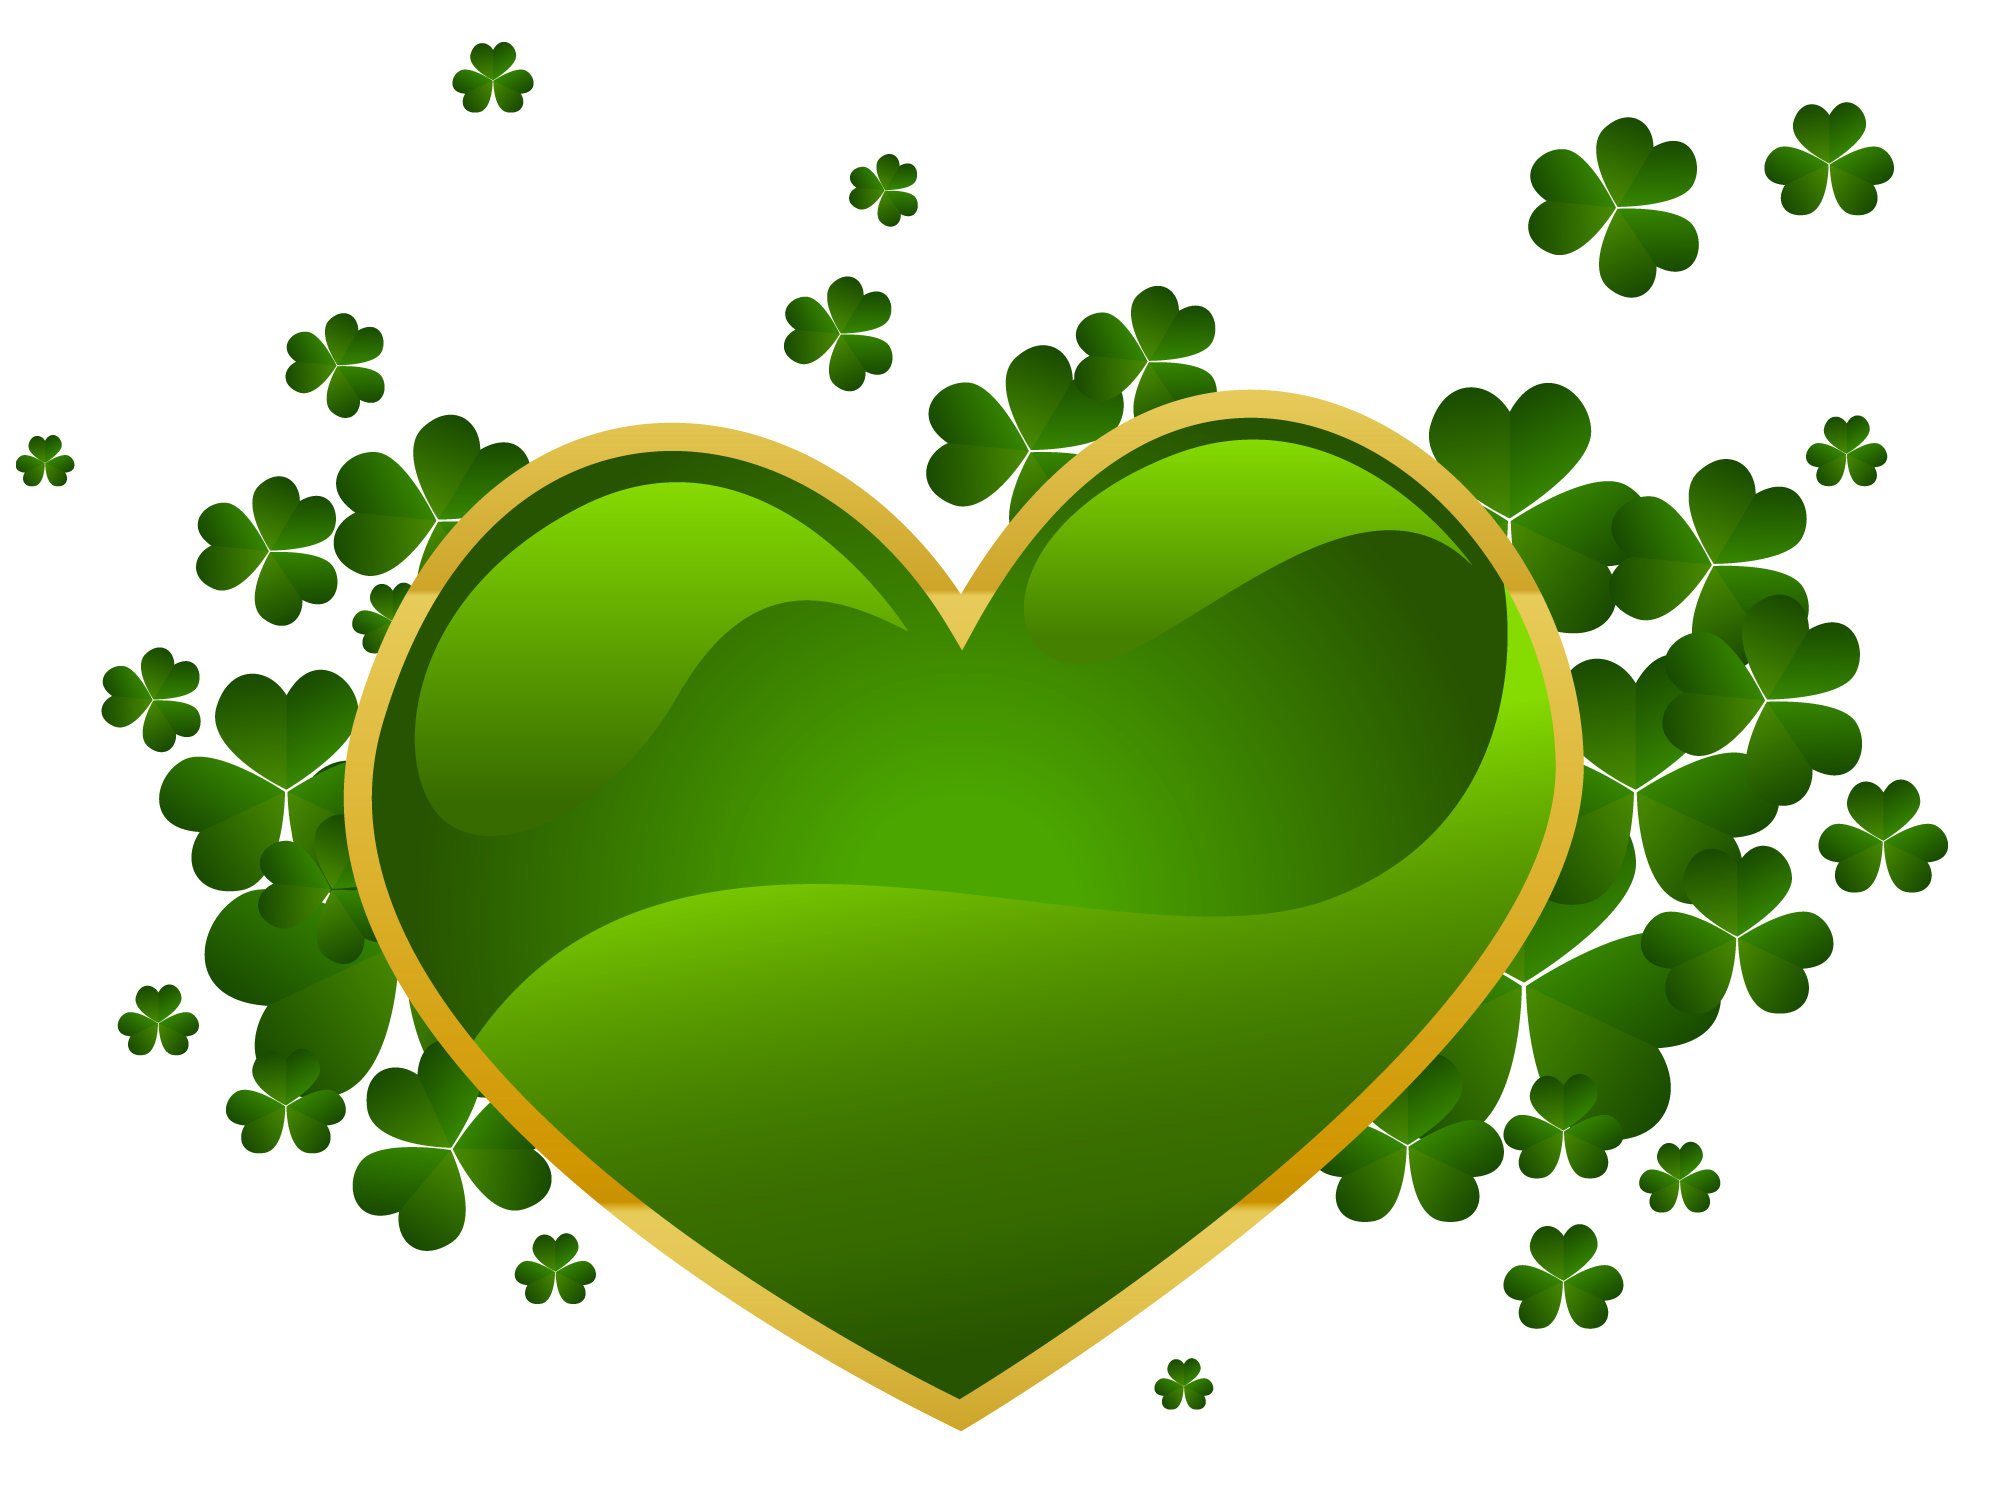 1990x1501 St. Patrick's Day Clipart St Patricks Day Background Clipart